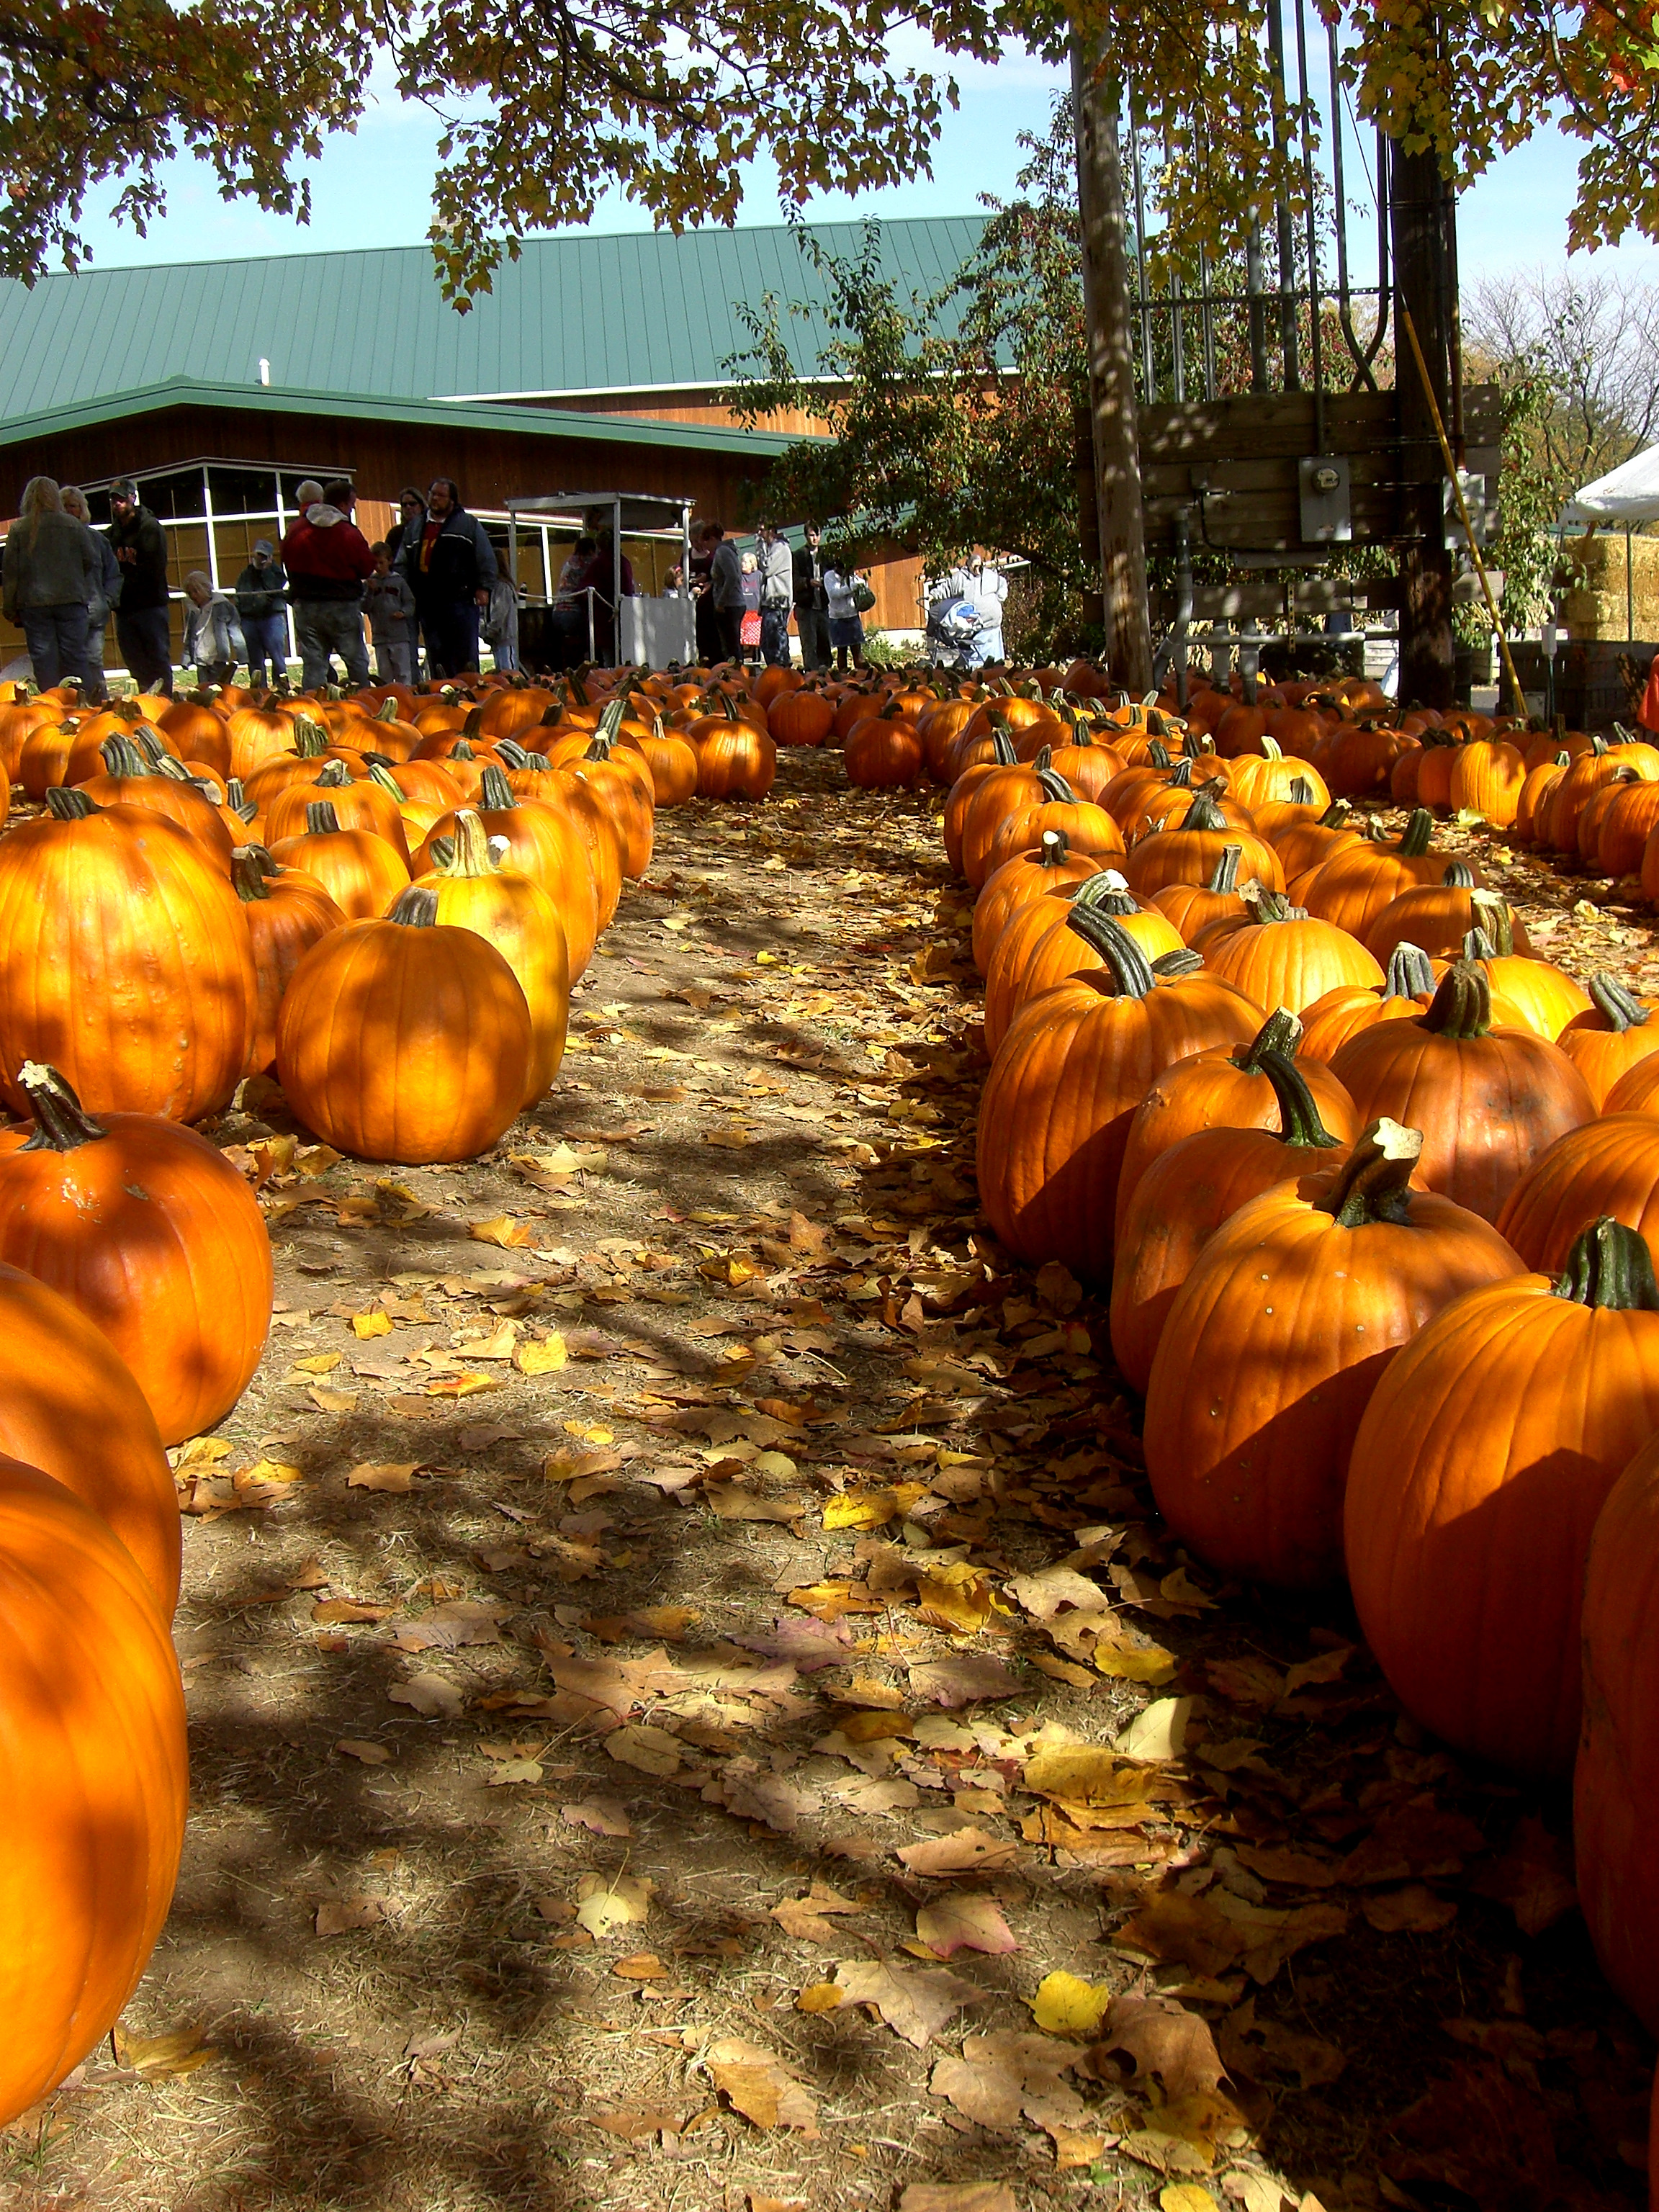 Pumpkin patch row photo